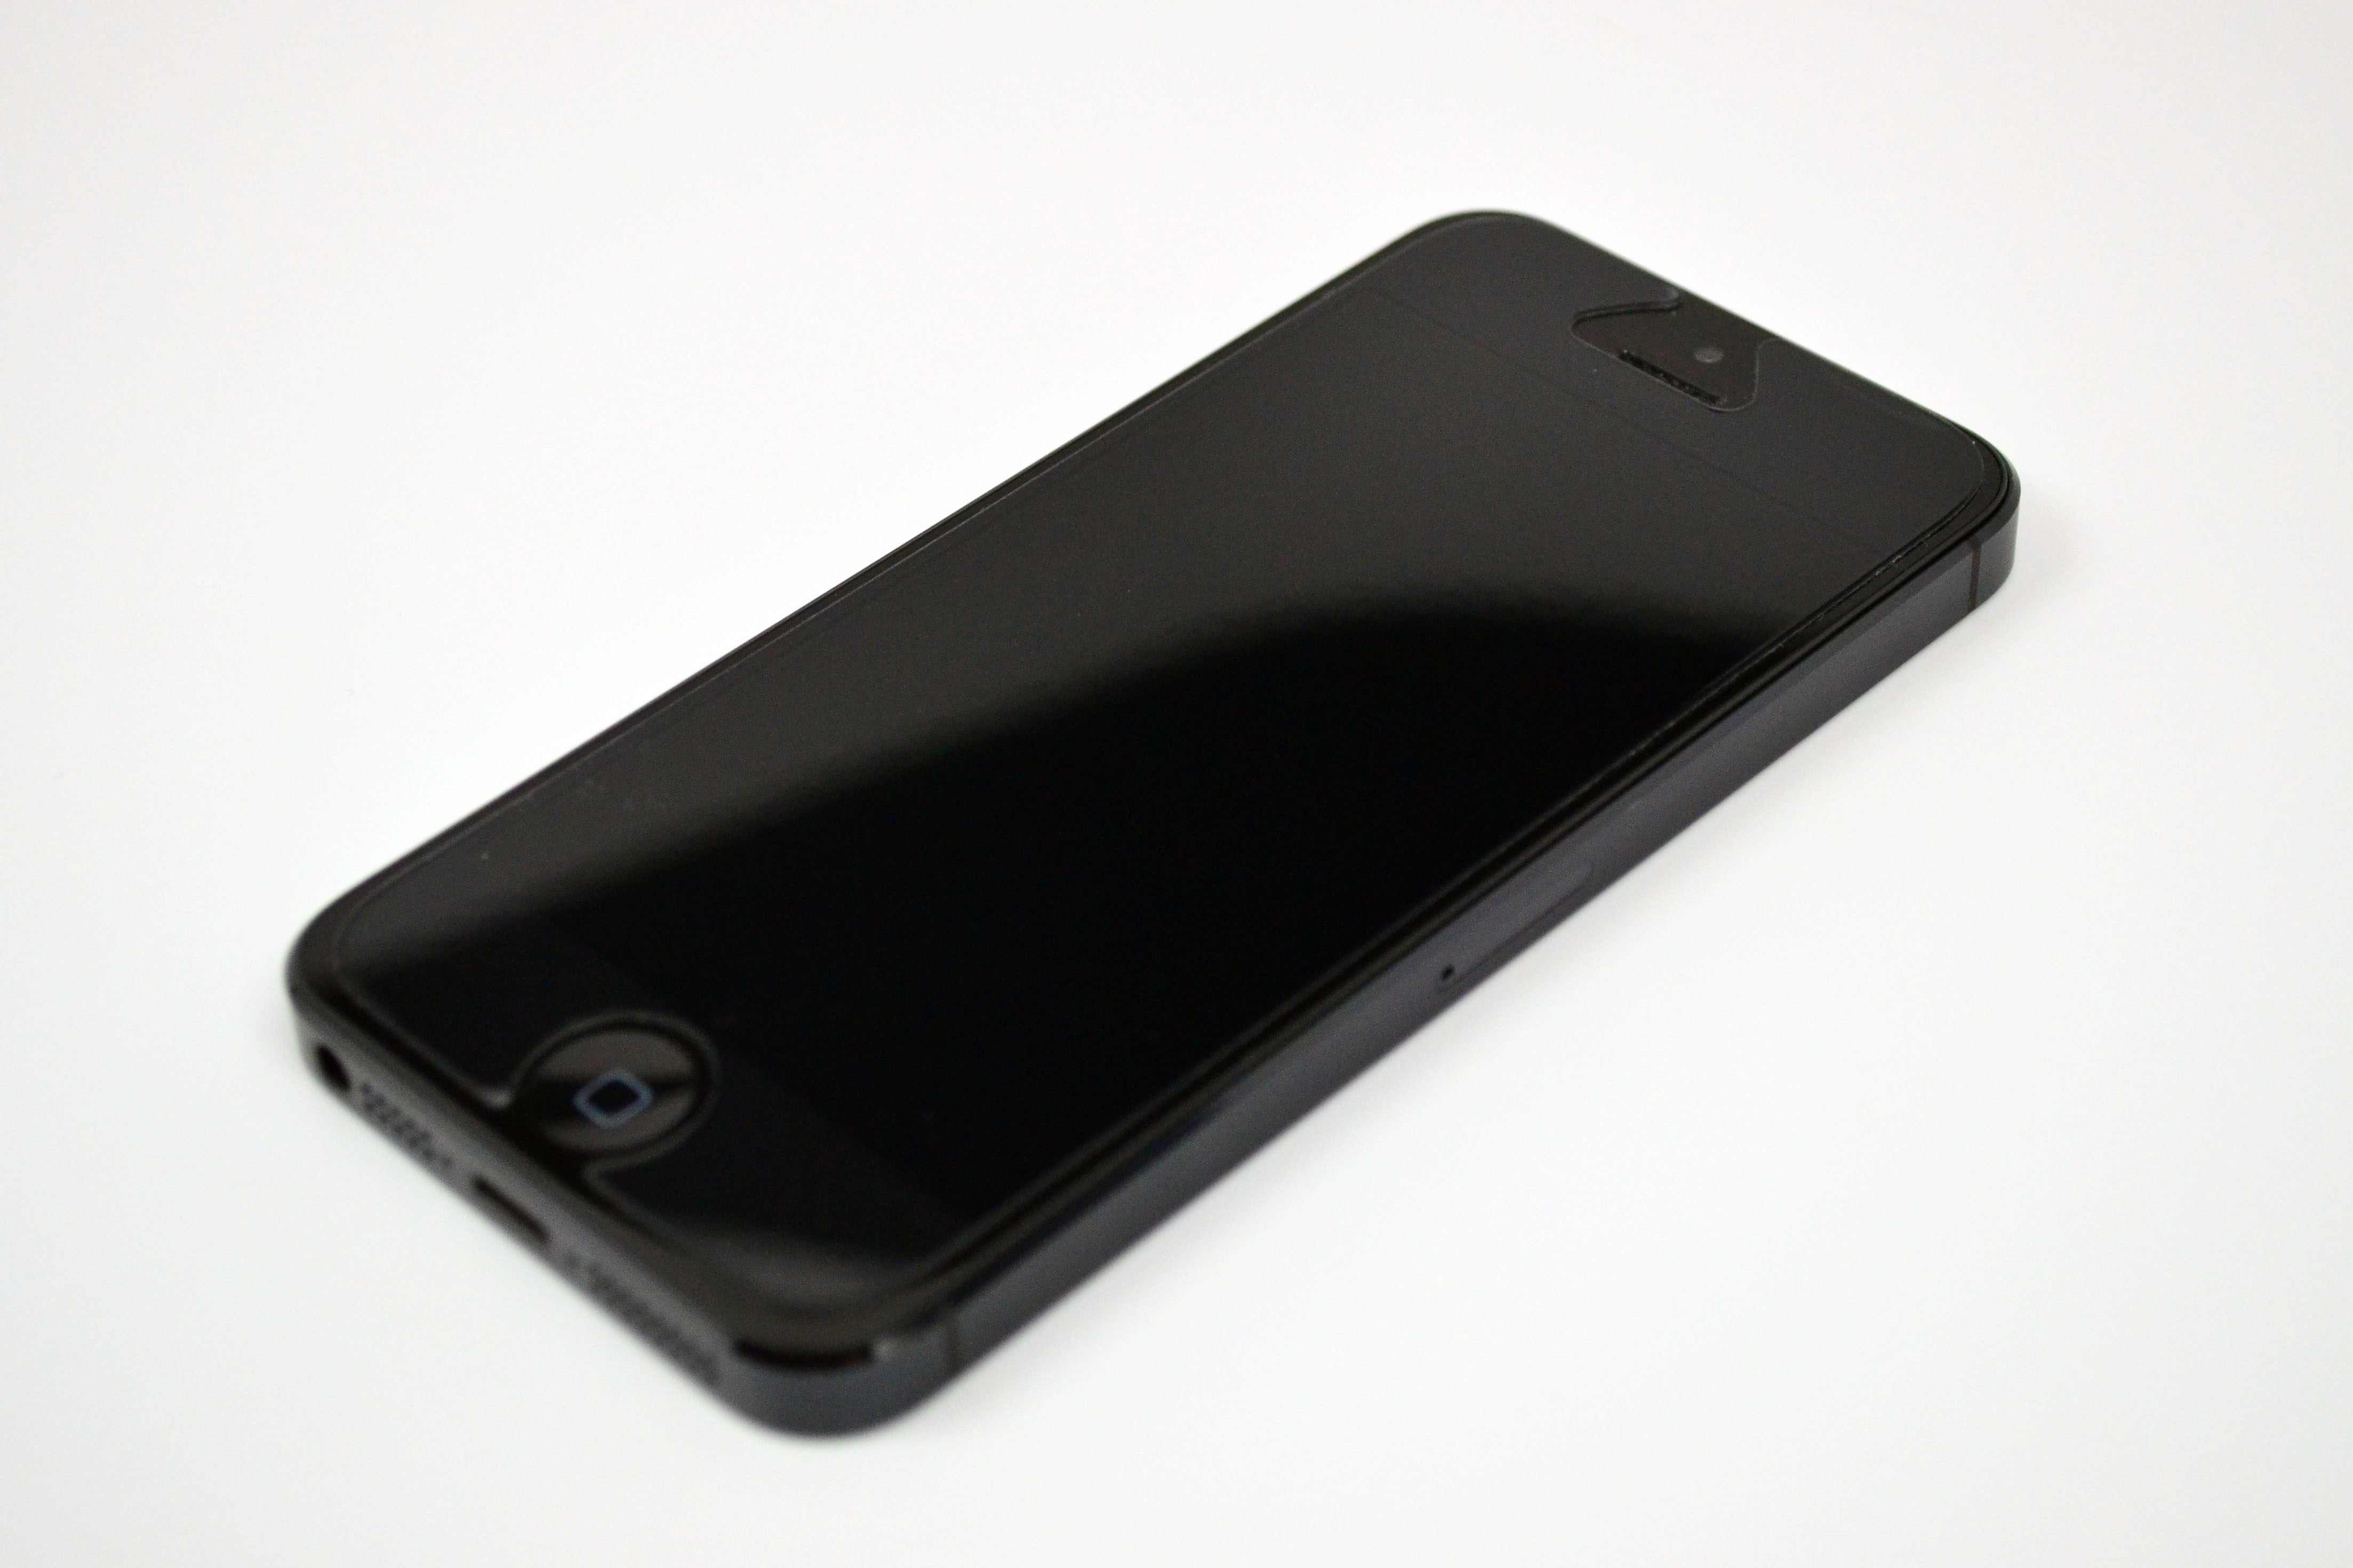 ZAGG InvisibleSHIELD Extreme iPhone 5 Screen Protector Review - 1